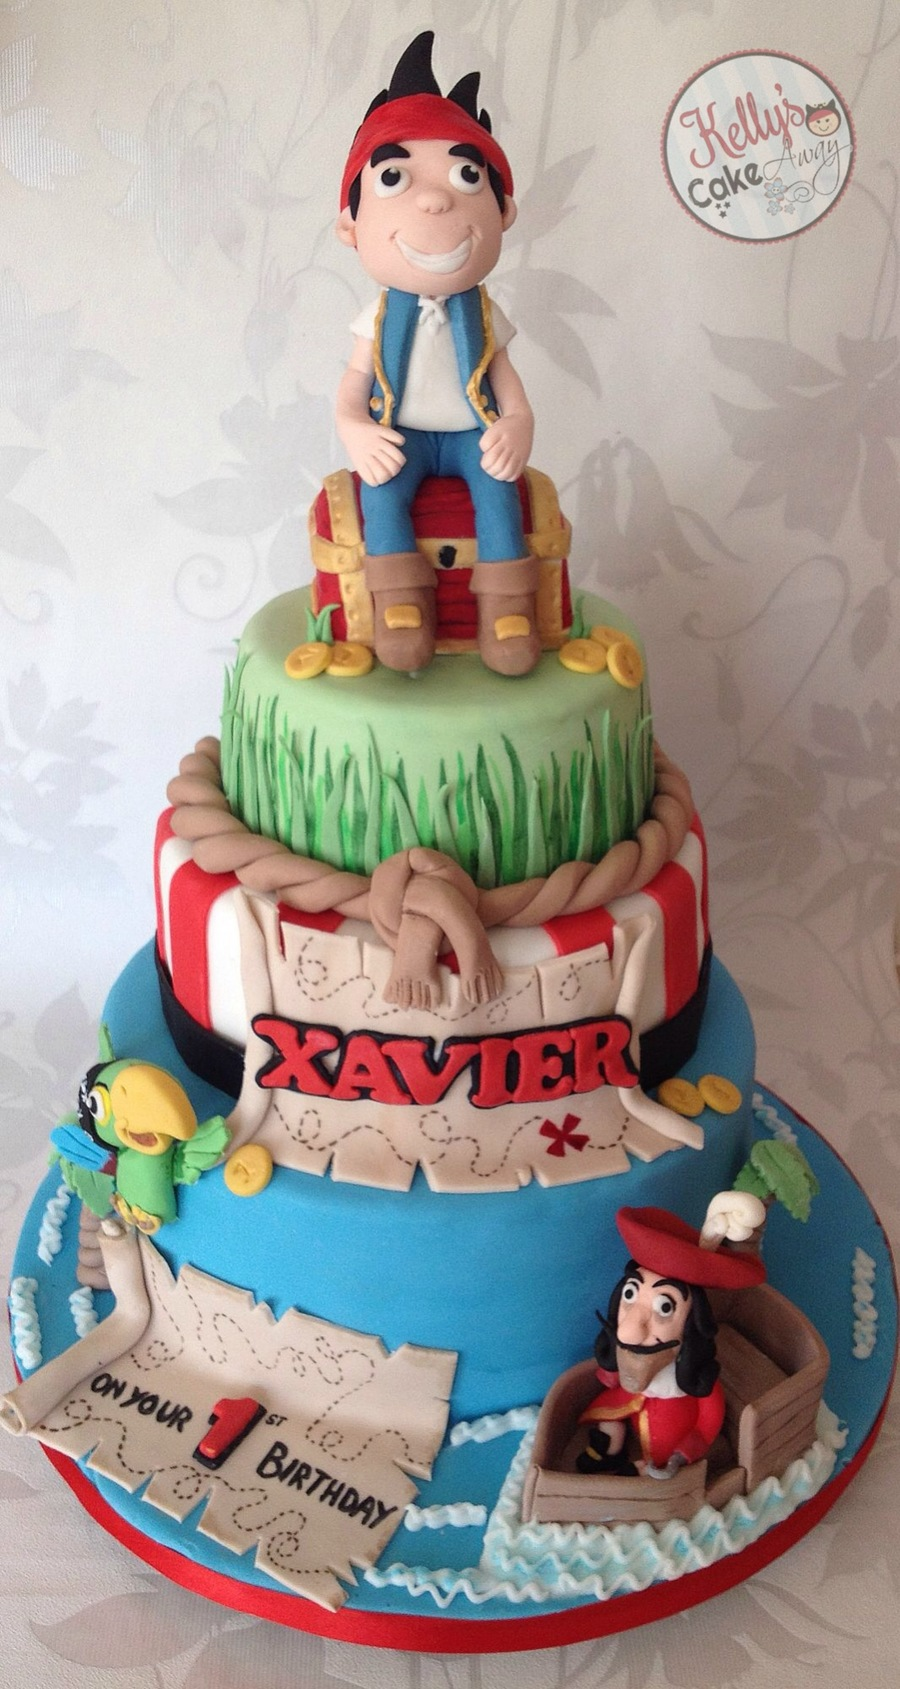 Jake And The Neverland Pirates All Handmade And Edible on Cake Central